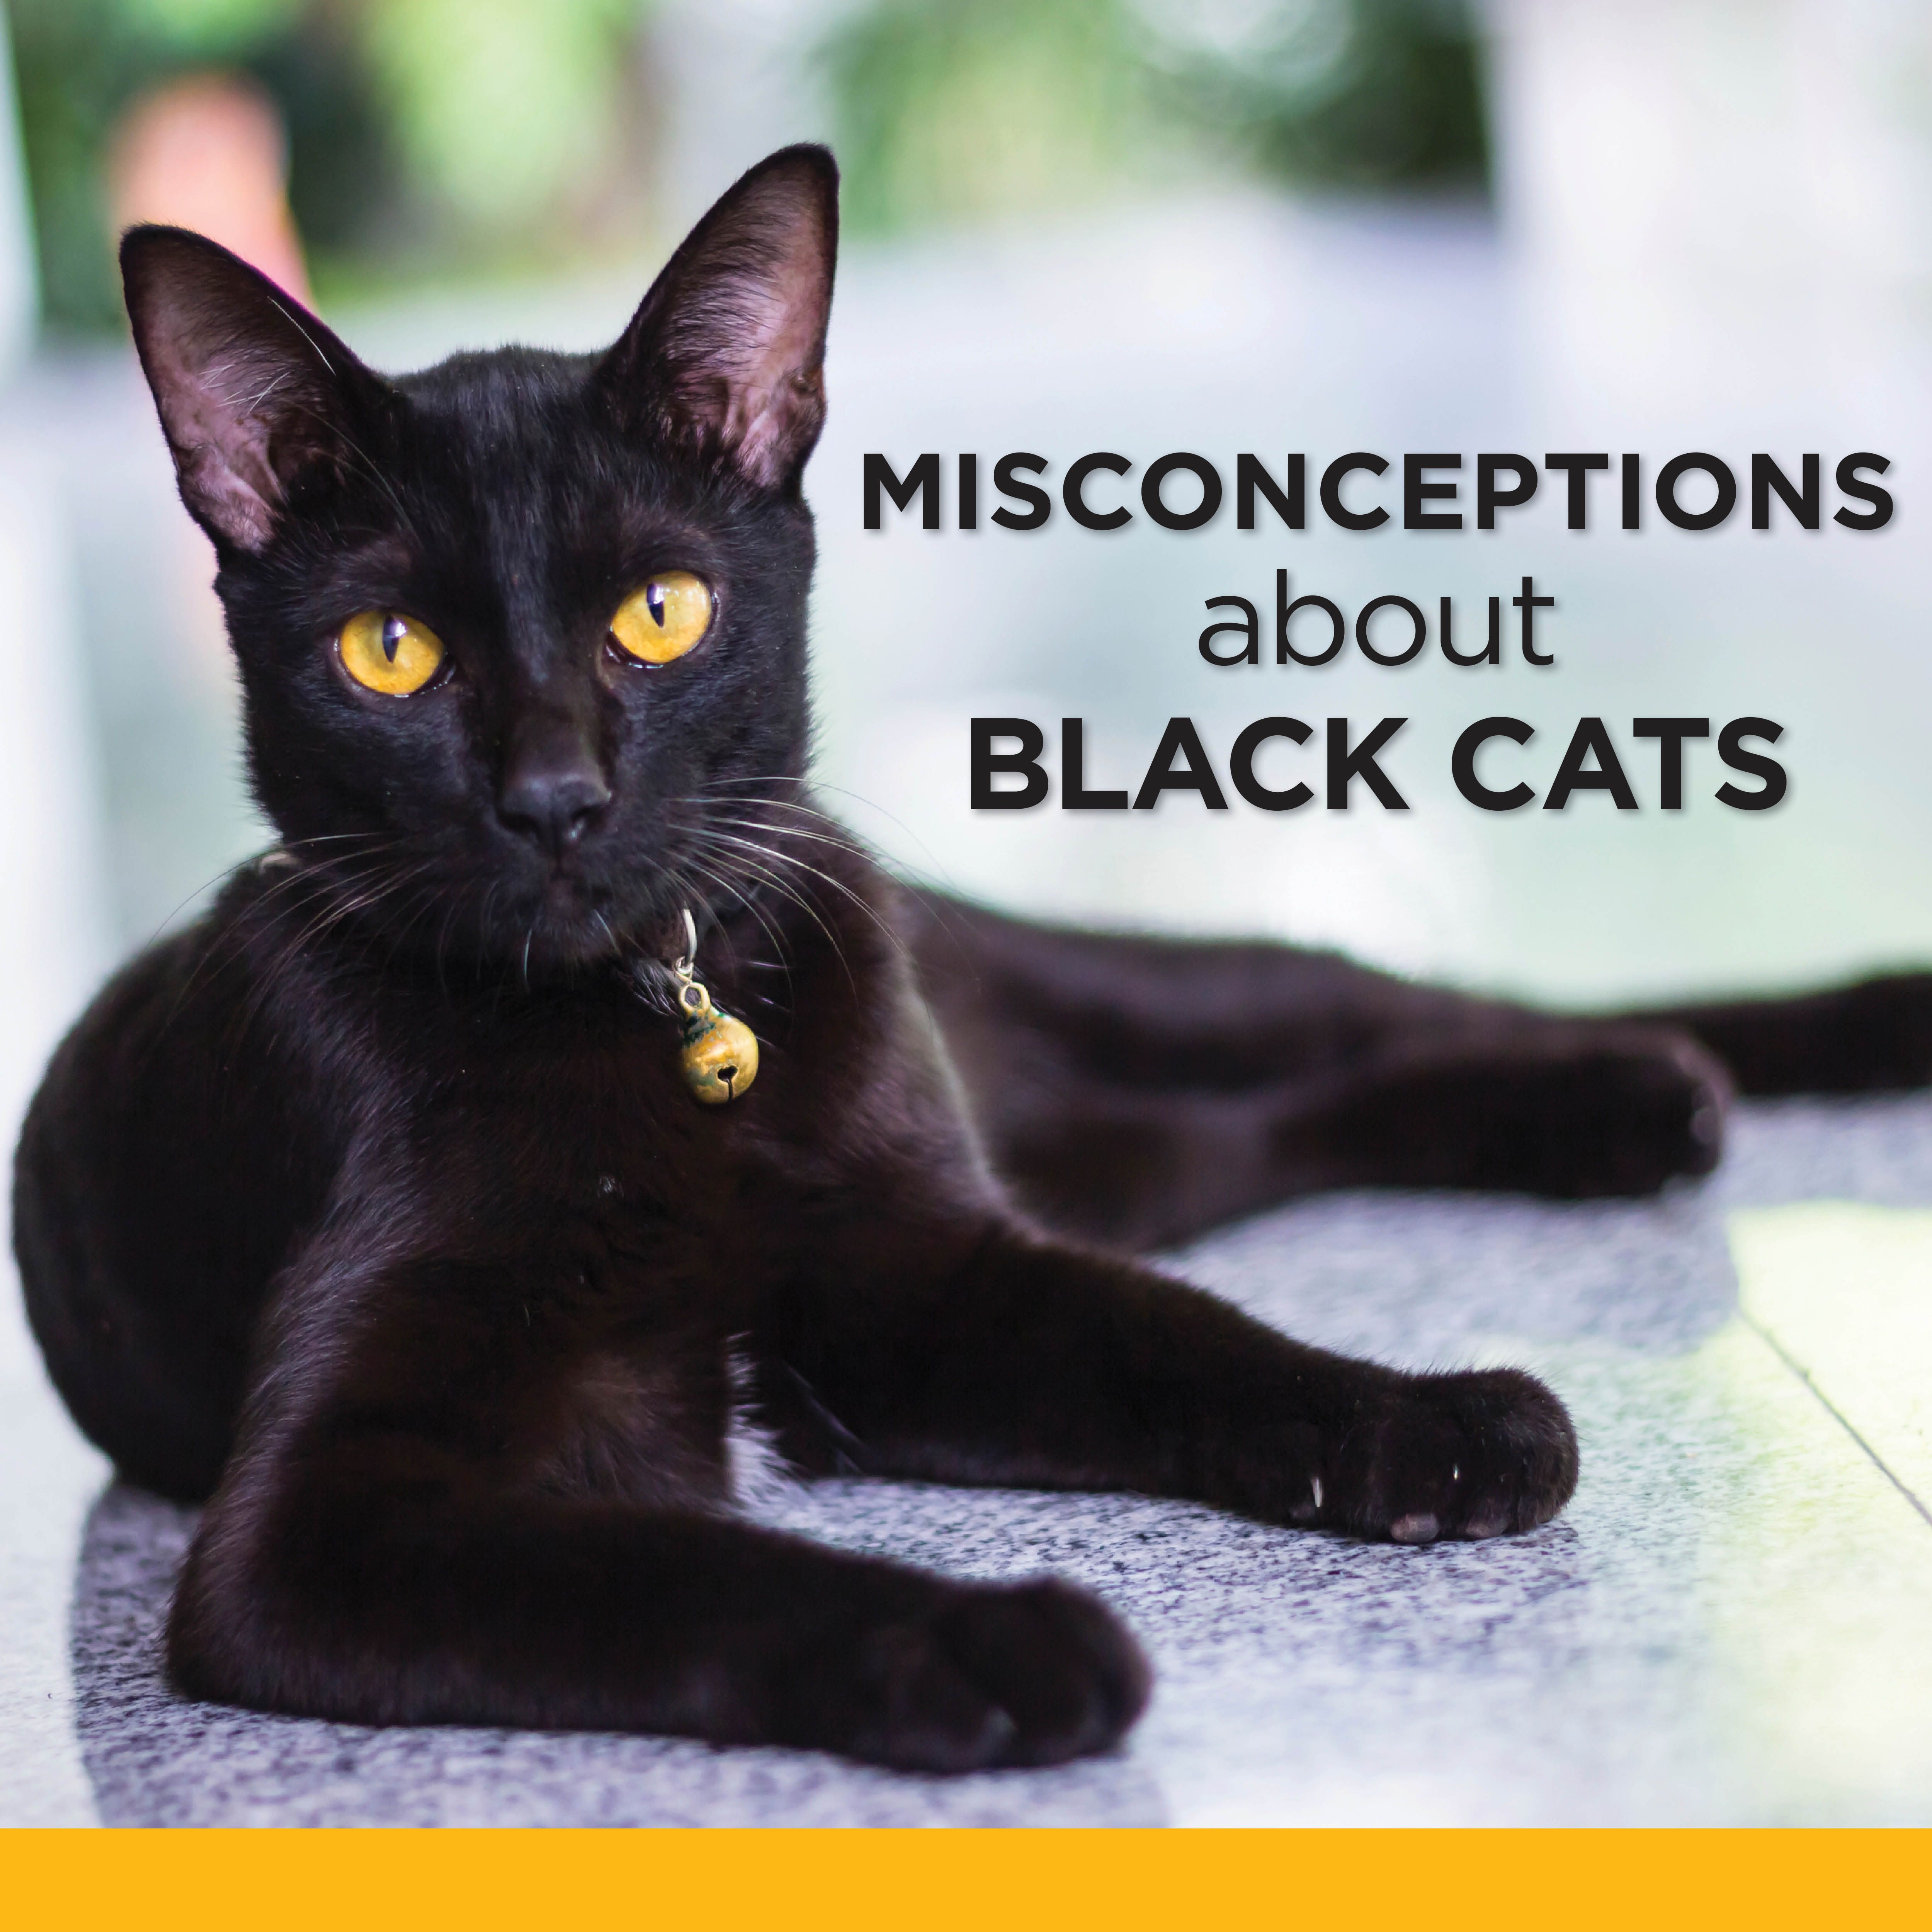 Today Is National Black Cat Appreciation Day Why Do Black Cats Historically Get Such A Bad Rap Are You Familiar Wit Black Cat Appreciation Day Cats Black Cat